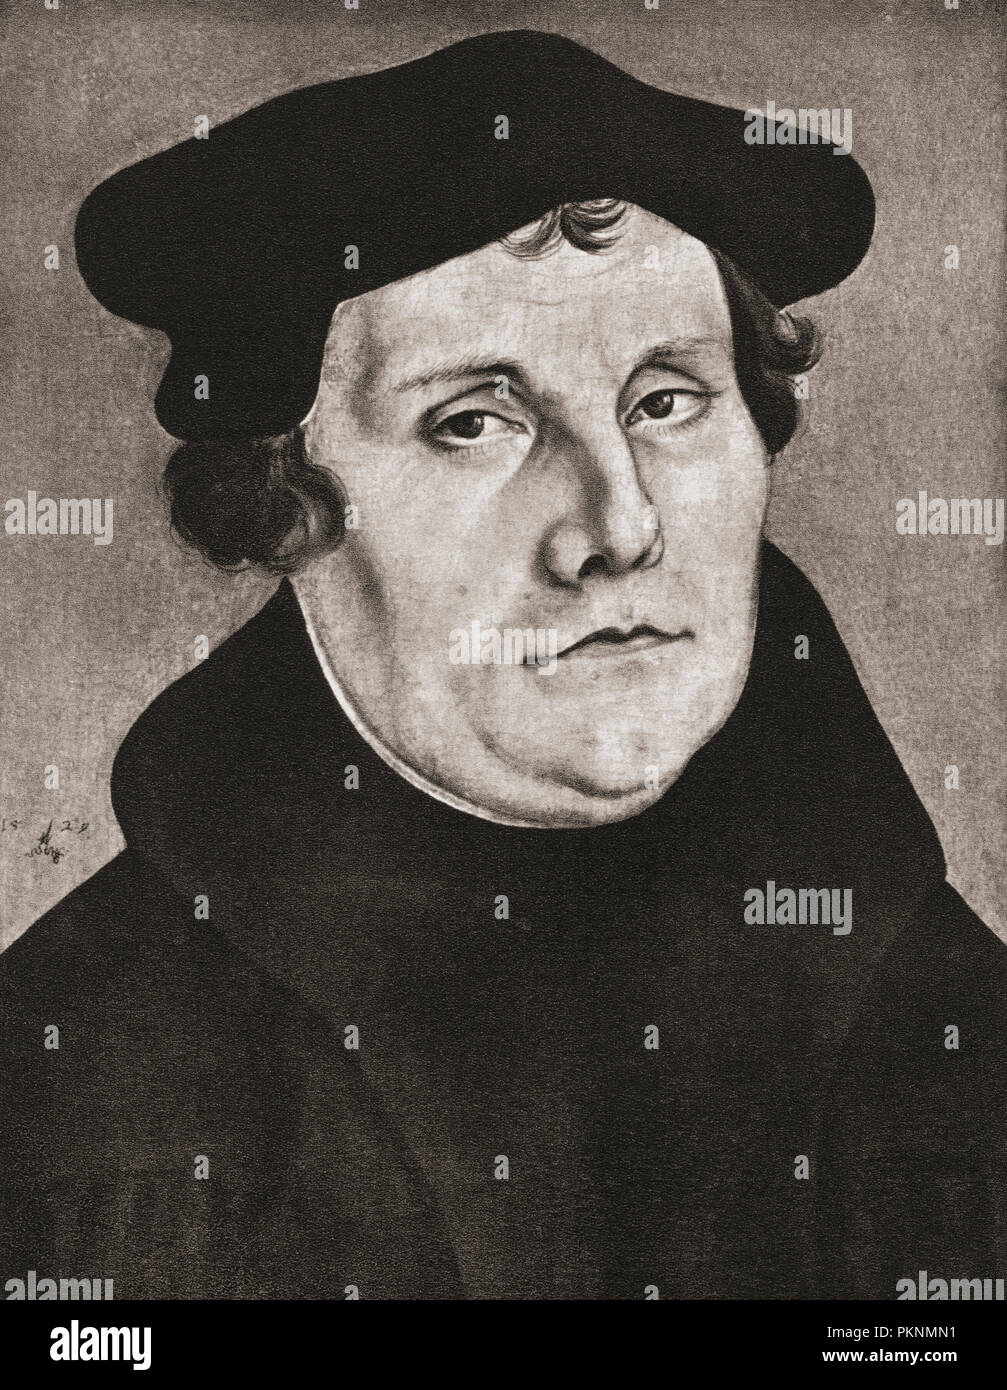 Martin Luther, 1483 - 1546.  German professor of theology, composer, priest, monk, and a seminal figure in the Protestant Reformation. - Stock Image